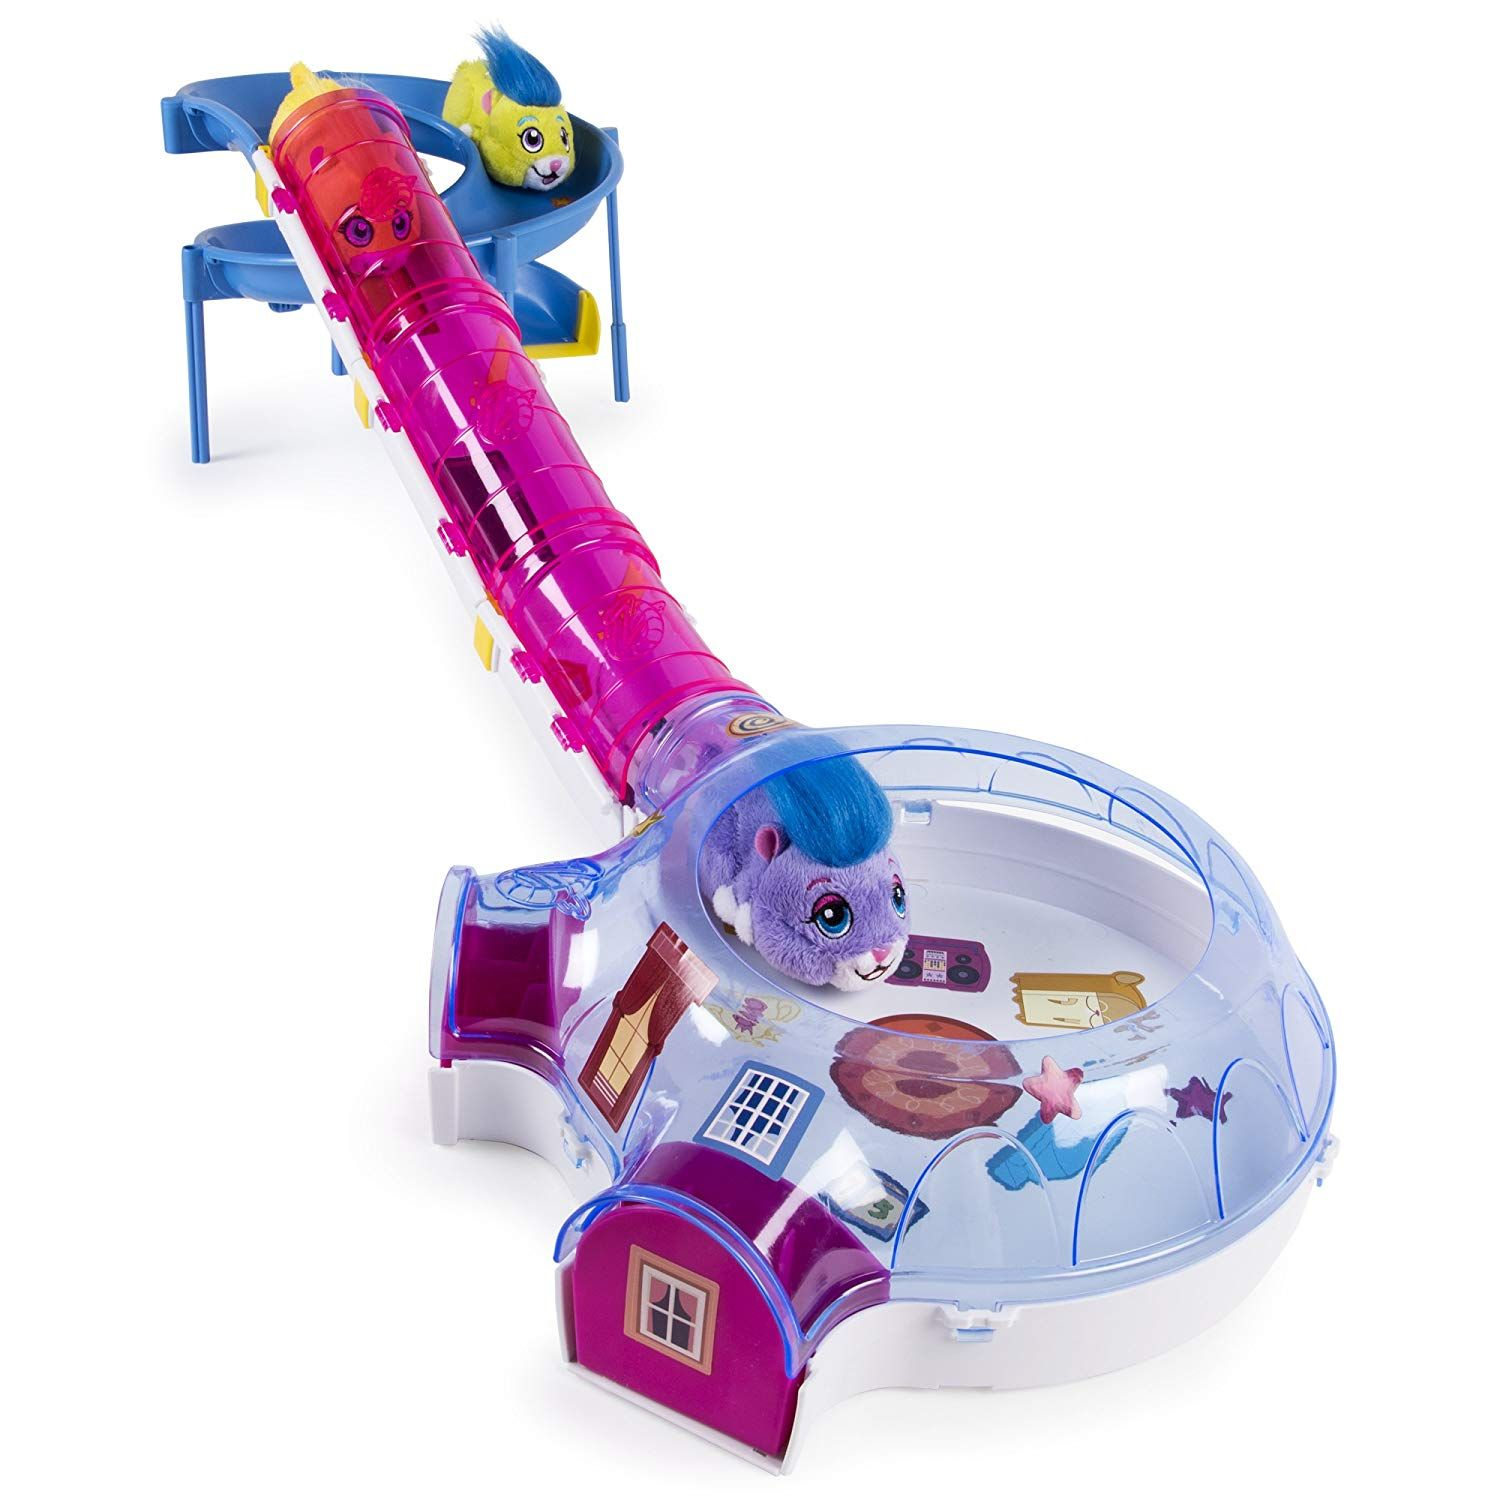 12 50 Reg 30 Zhu Zhu Pets Hamster House Play Set With Slide And Tunnel Score This Is A Great Price Grab The Hamster House Little Live Pets Zhu Zhu